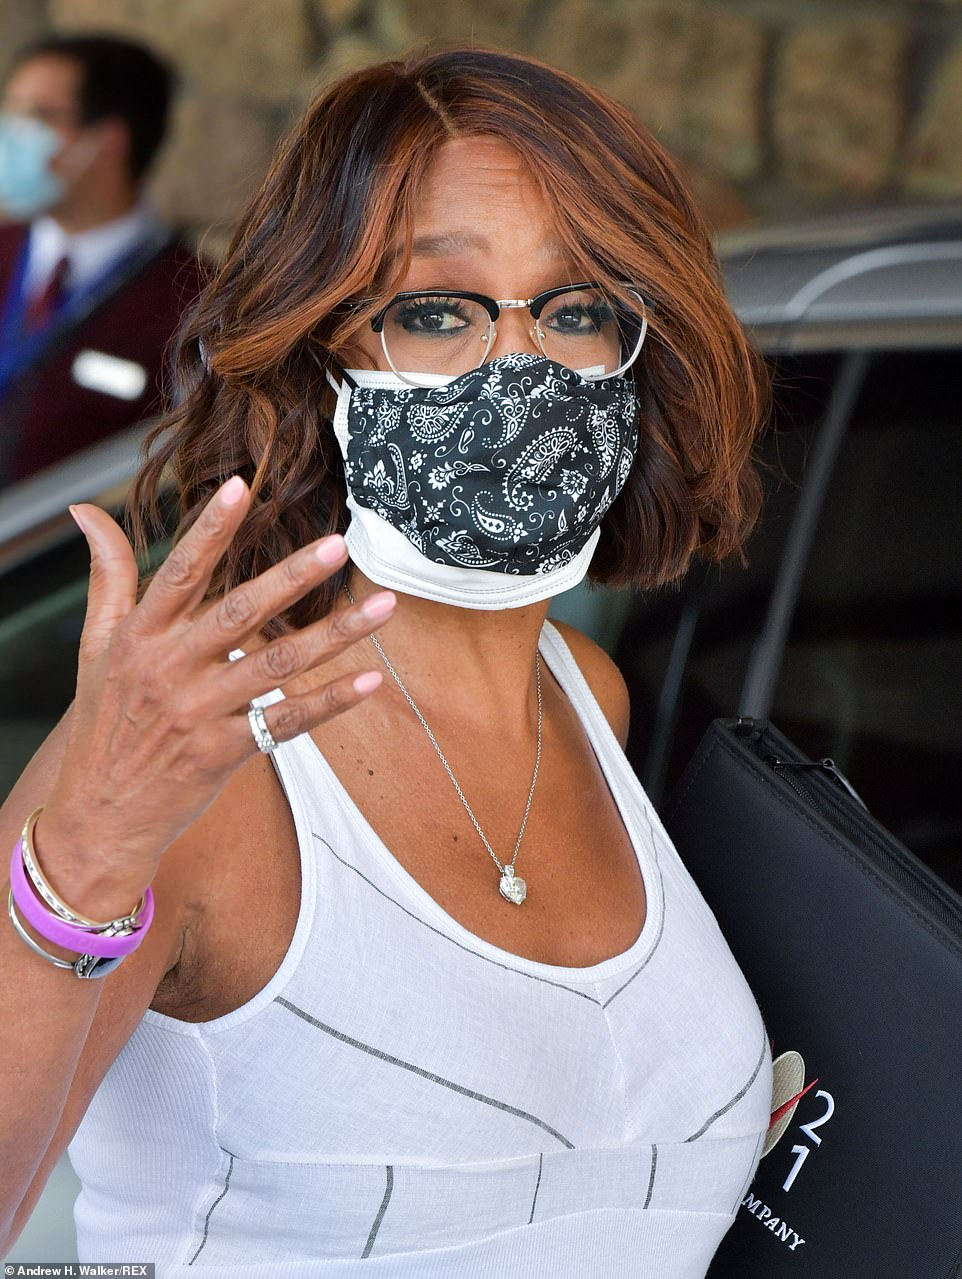 CBS News' Gayle King also made her appearance at the Sun Valley conference on Tuesday